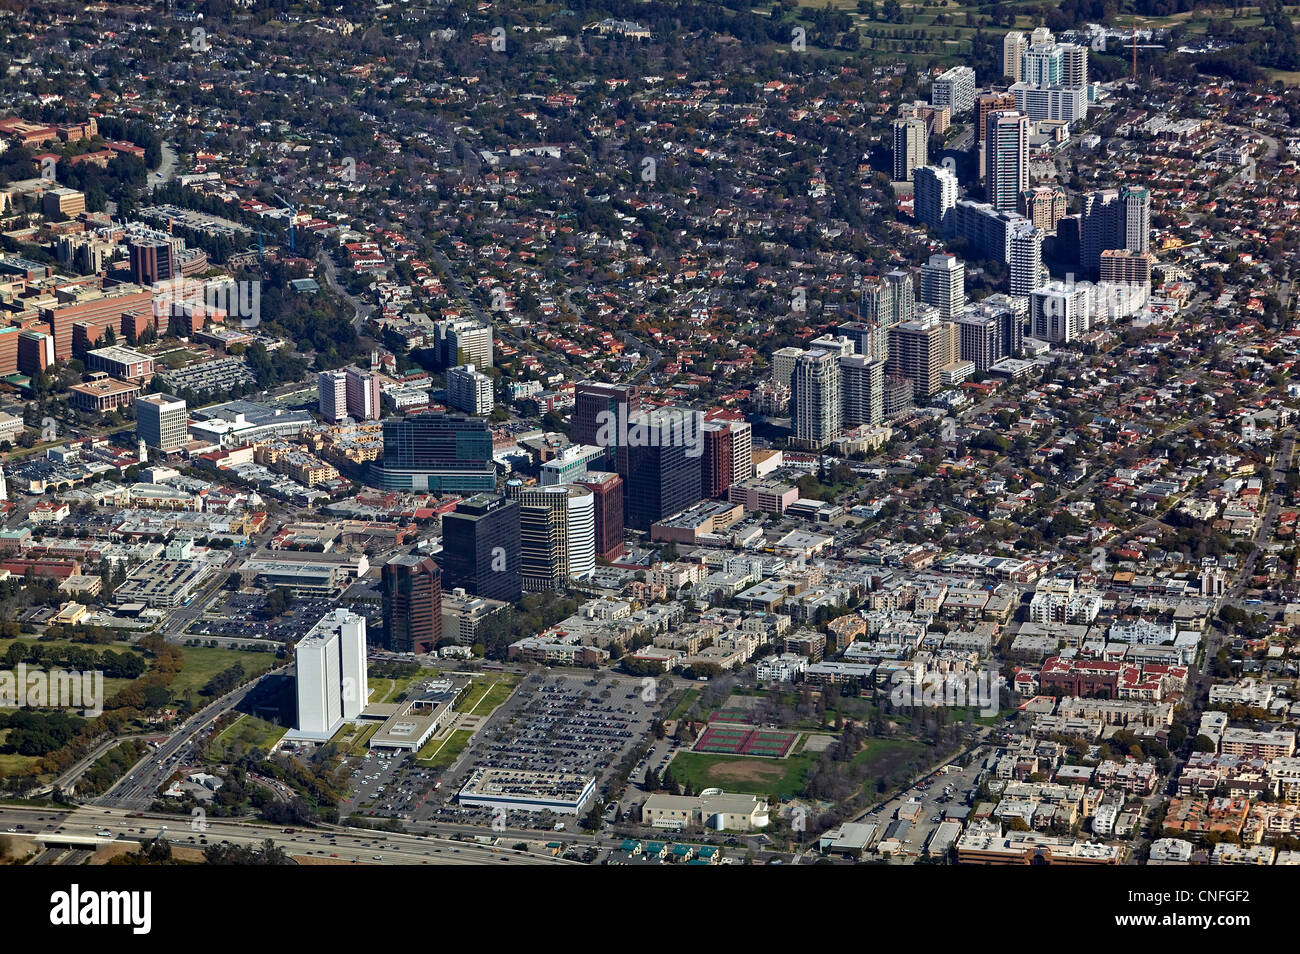 aerial photograph Wilshire Boulevard, Los Angeles, California - Stock Image